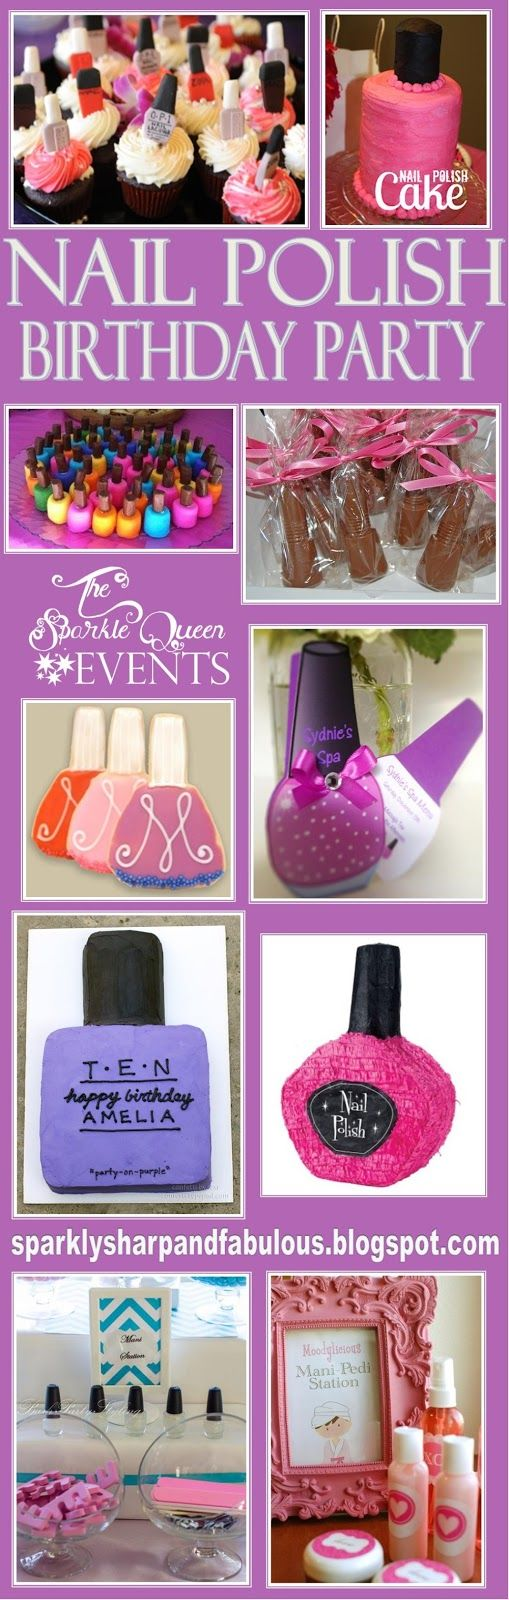 The Sparkle Queen: Nail Polish Themed Birthday Party